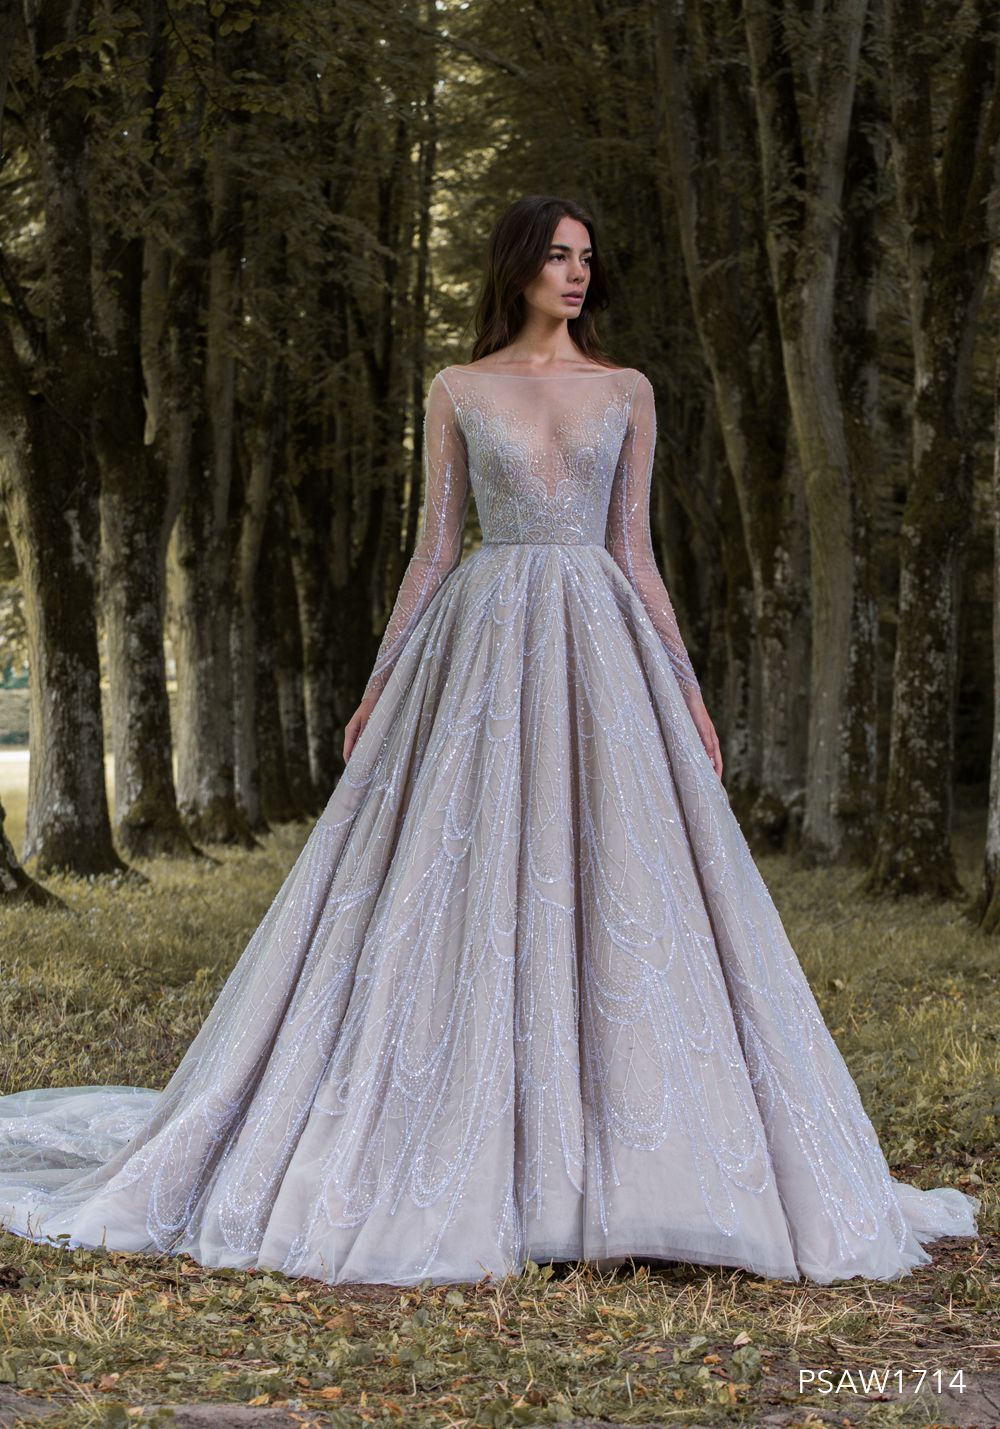 PSAW1714 - Ballgown with iridescent wing vein embroidery in shades ...